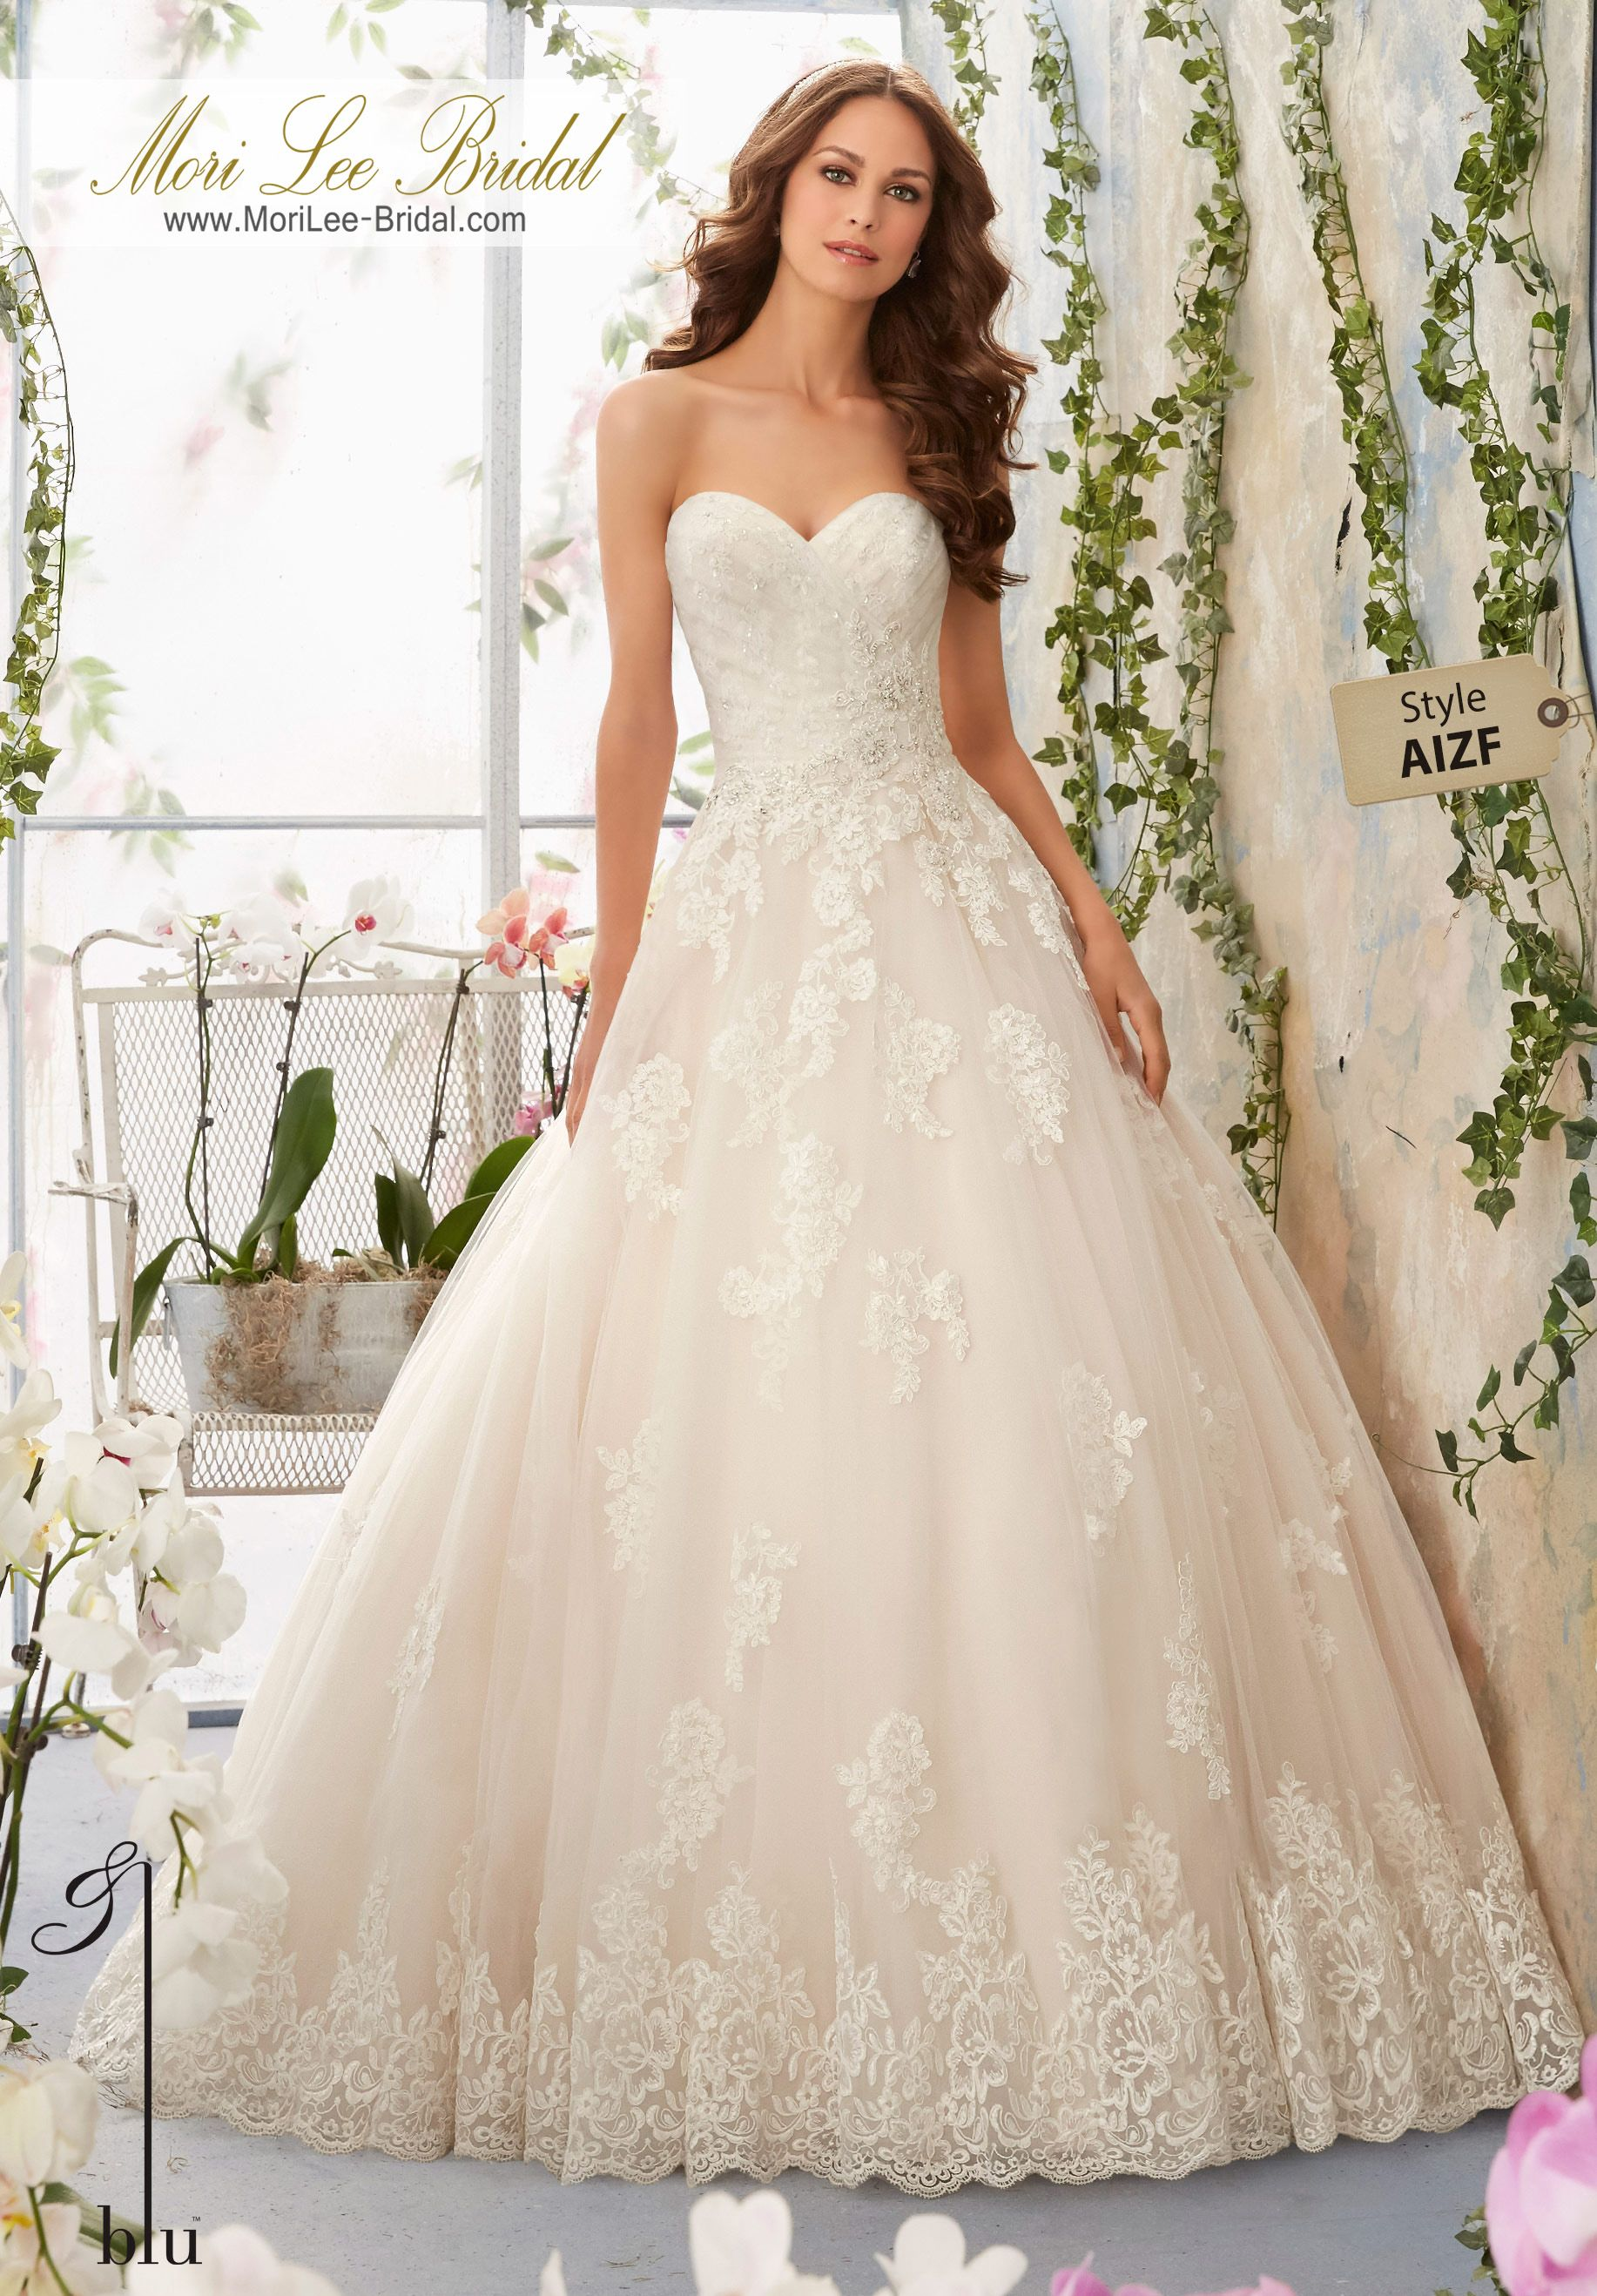 Dress style aizf alencon lace appliques with crystal beaded